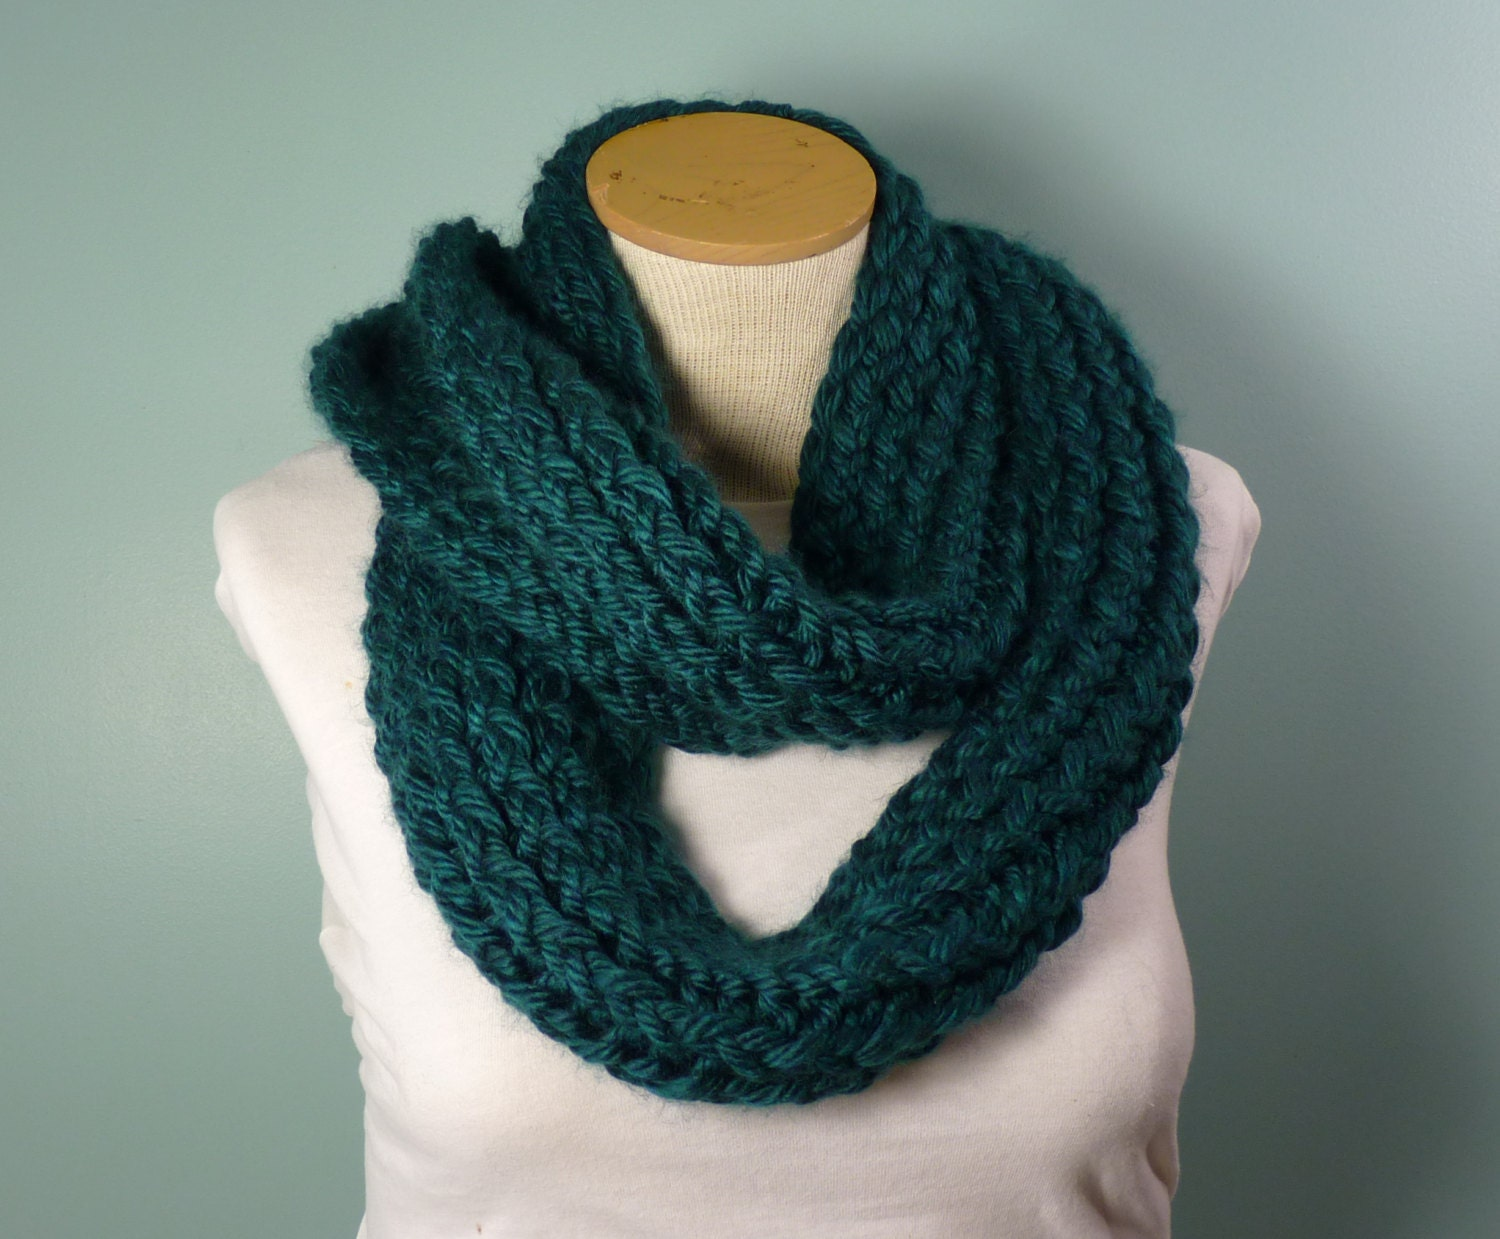 Infinity Scarf Loom Knitting Pattern For Beginners : Knit Infinity Scarf Loom Knit Loop Scarf Green/Blue Infinity